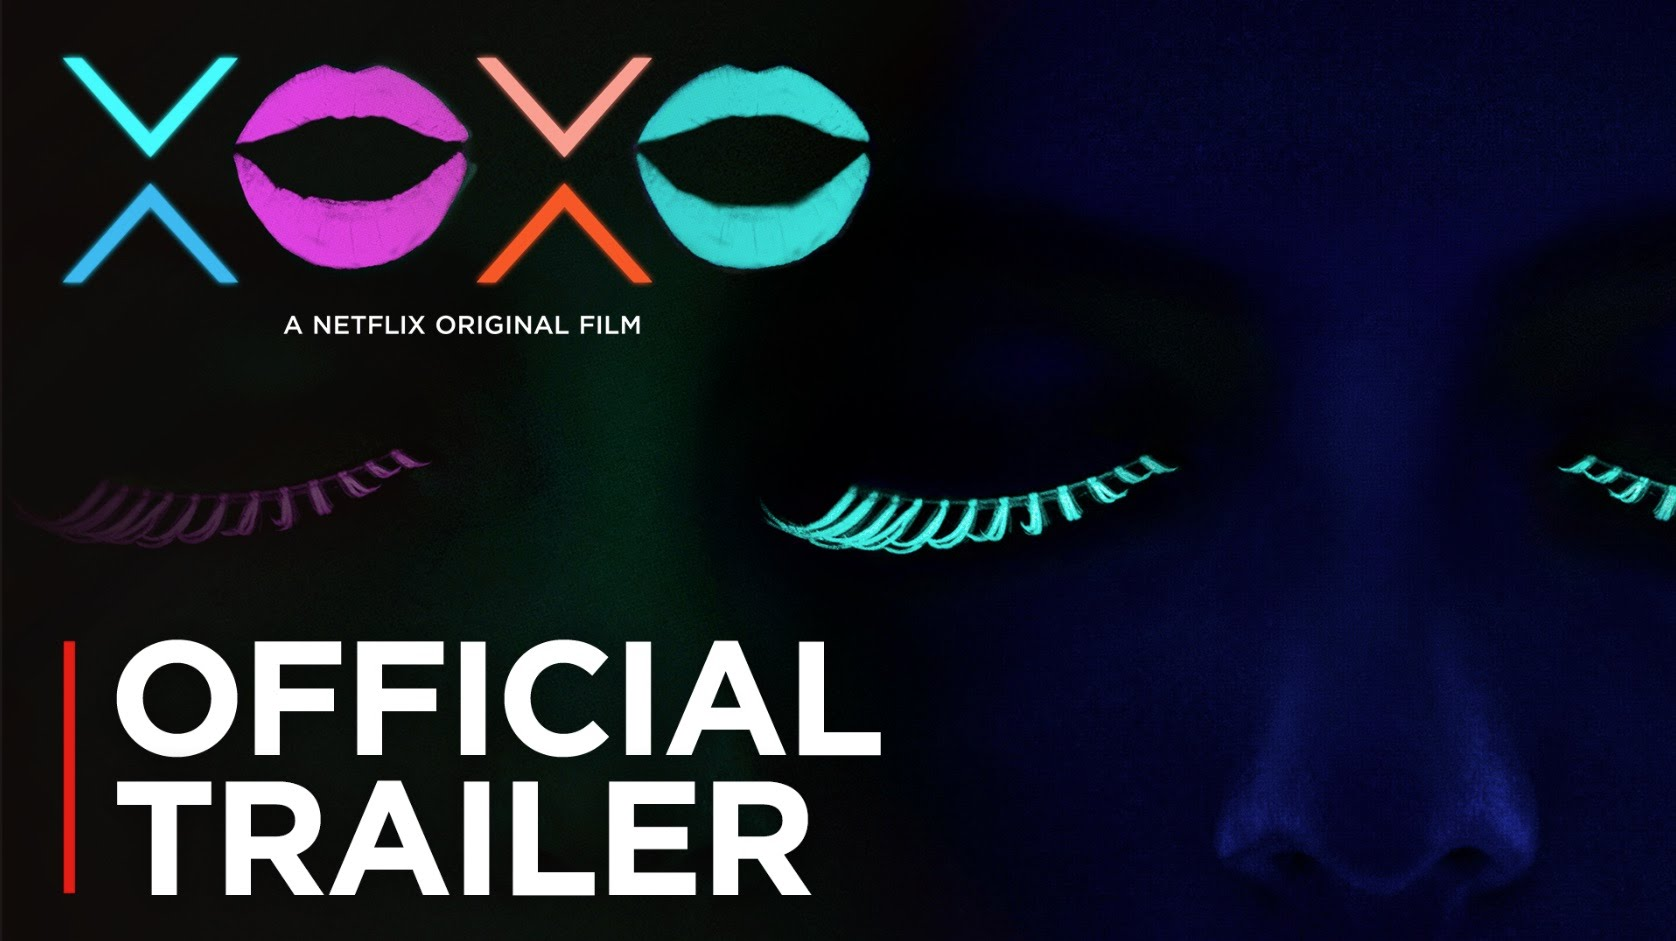 Netflix Releases Trailer For EDM Festival Movie, 'XOXO' | Your EDM